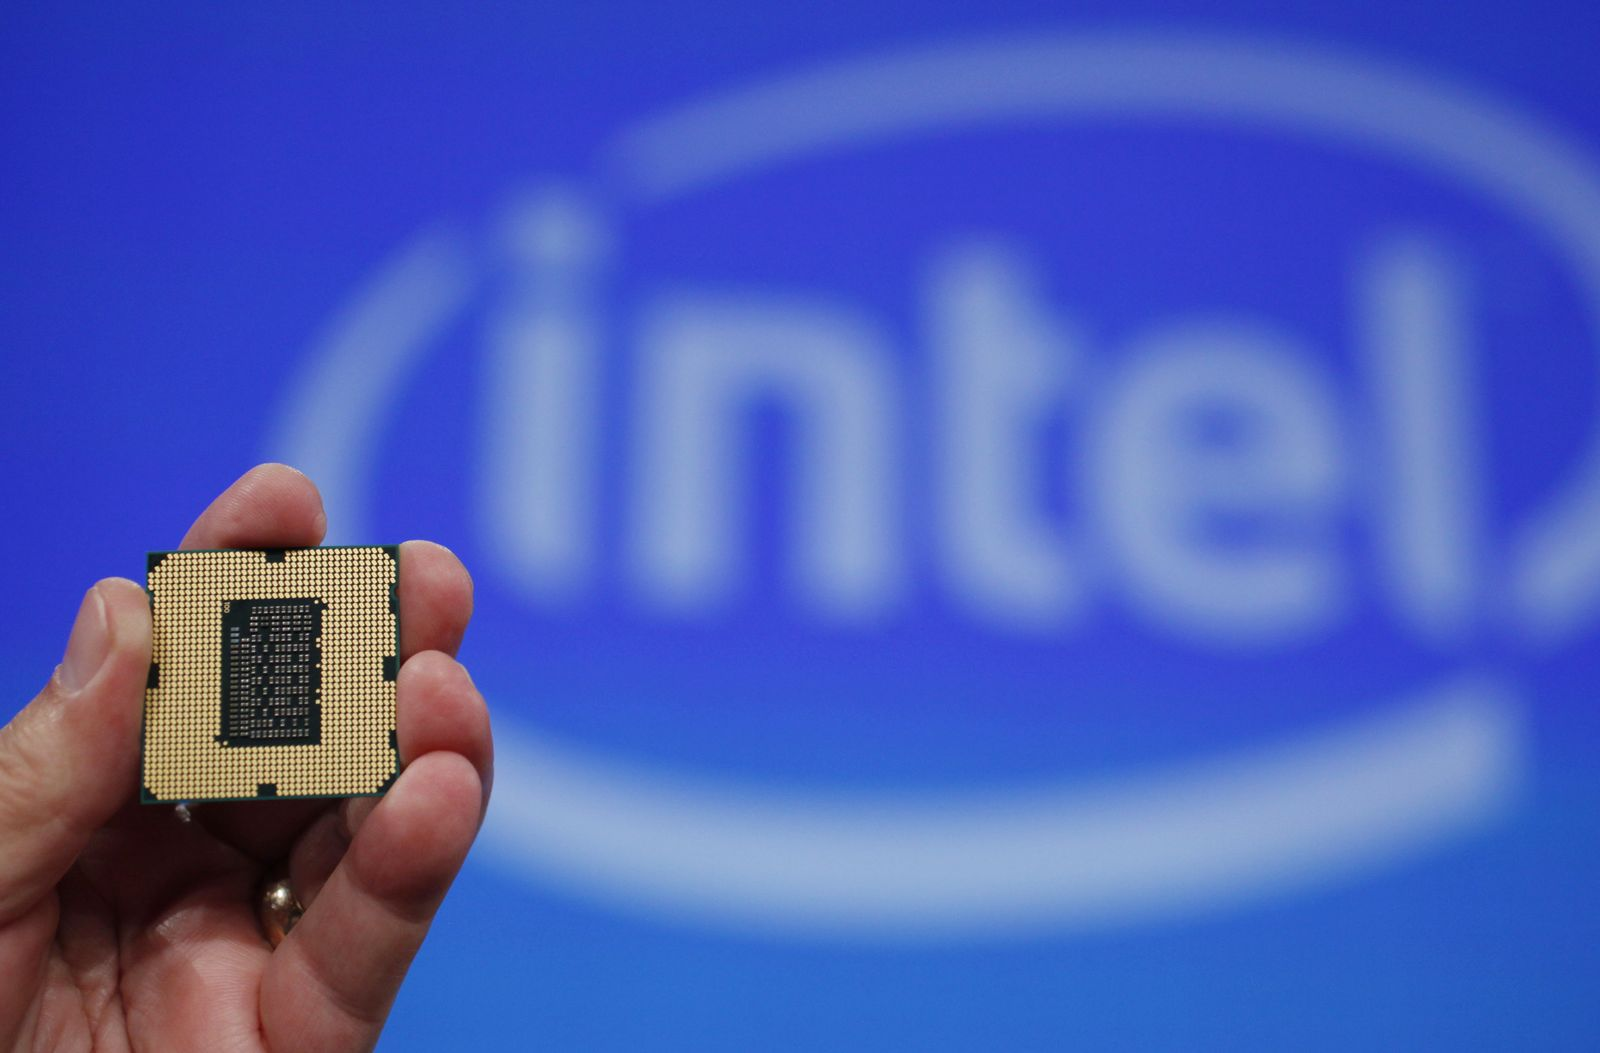 Intel / Sandy Bridge Chip 2010